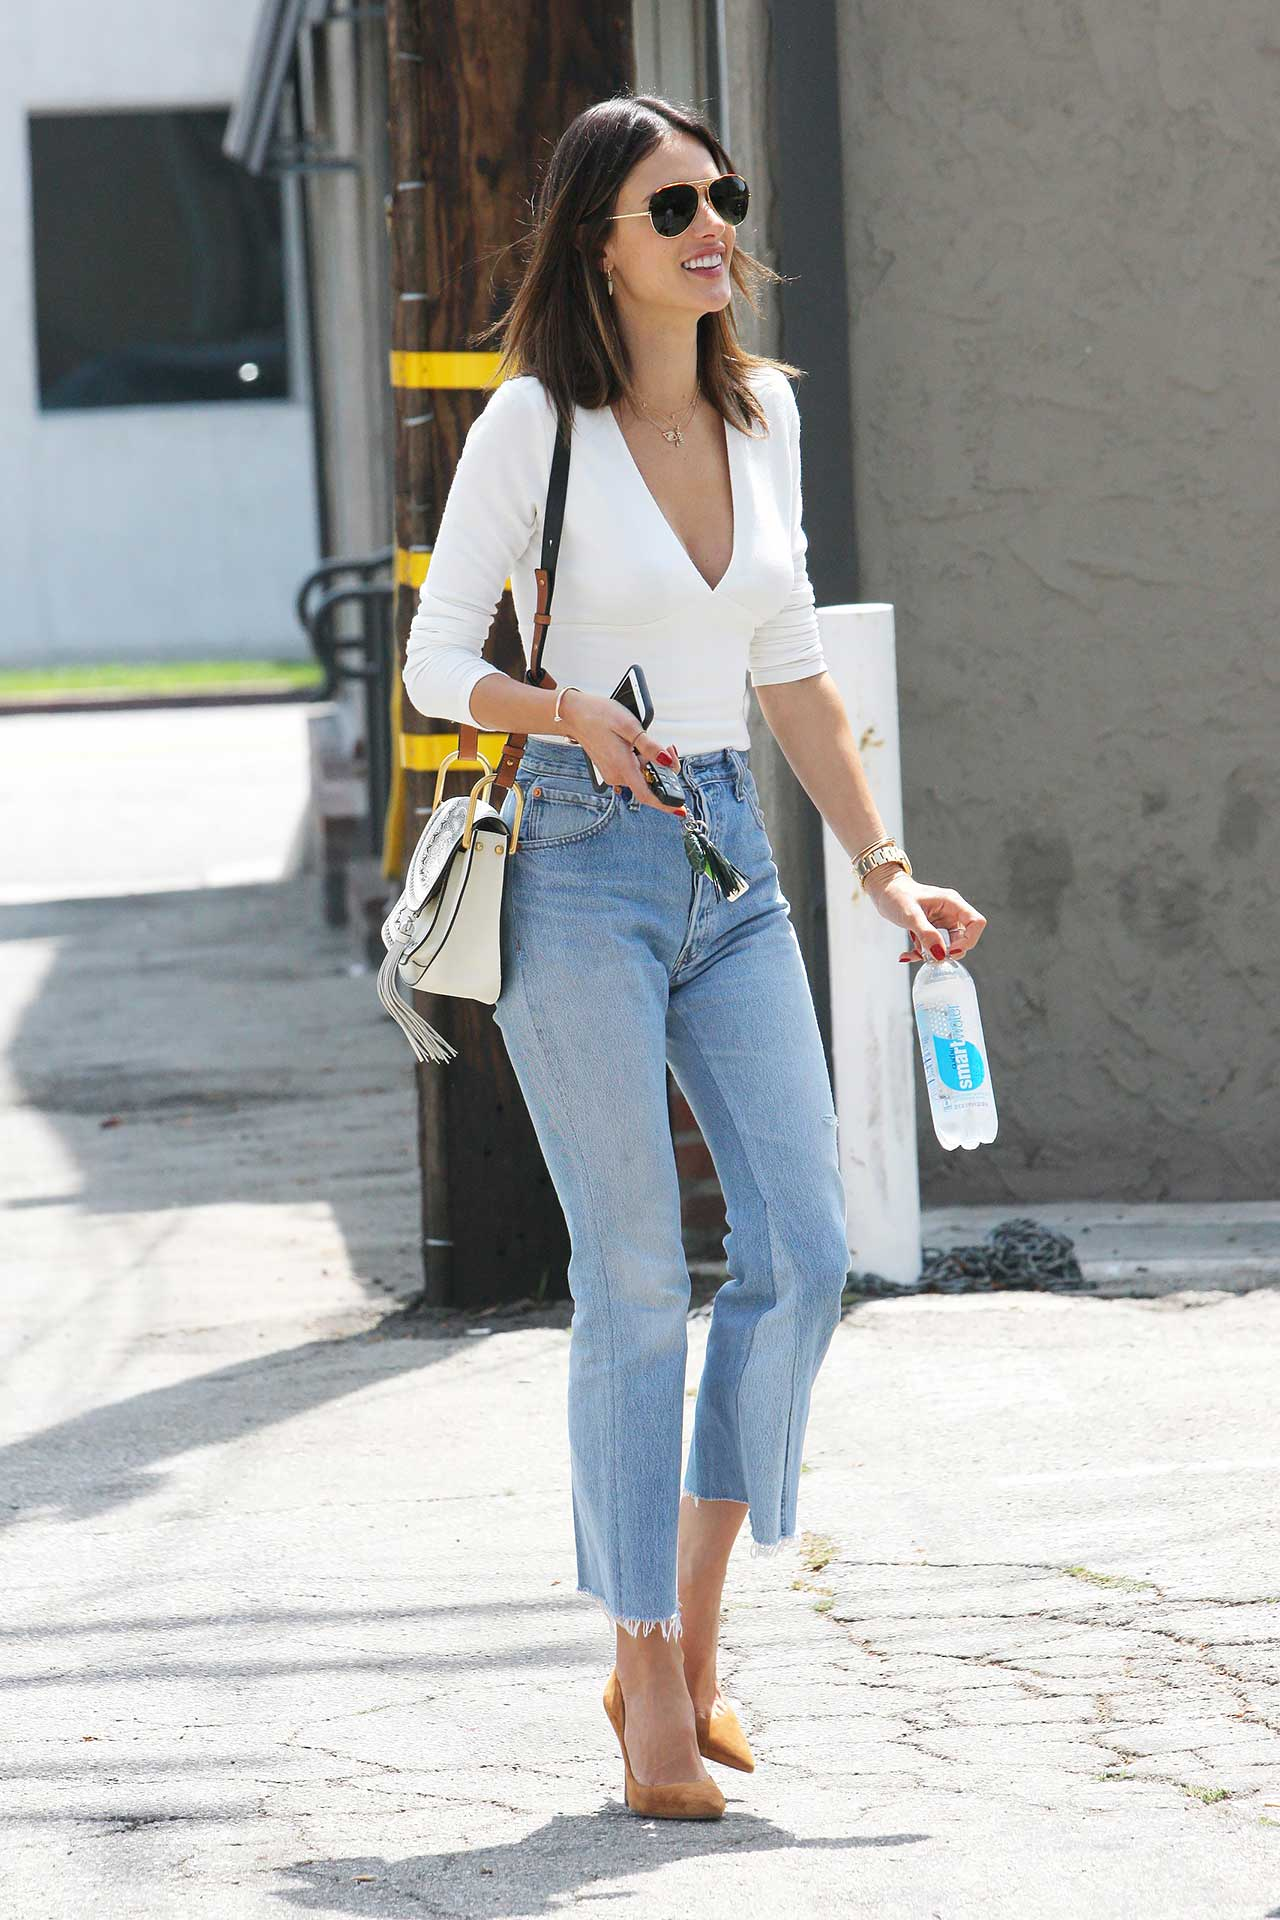 Alessandra-Ambrosio-REDONE-Levis-vintage-jeans-cropped-flare